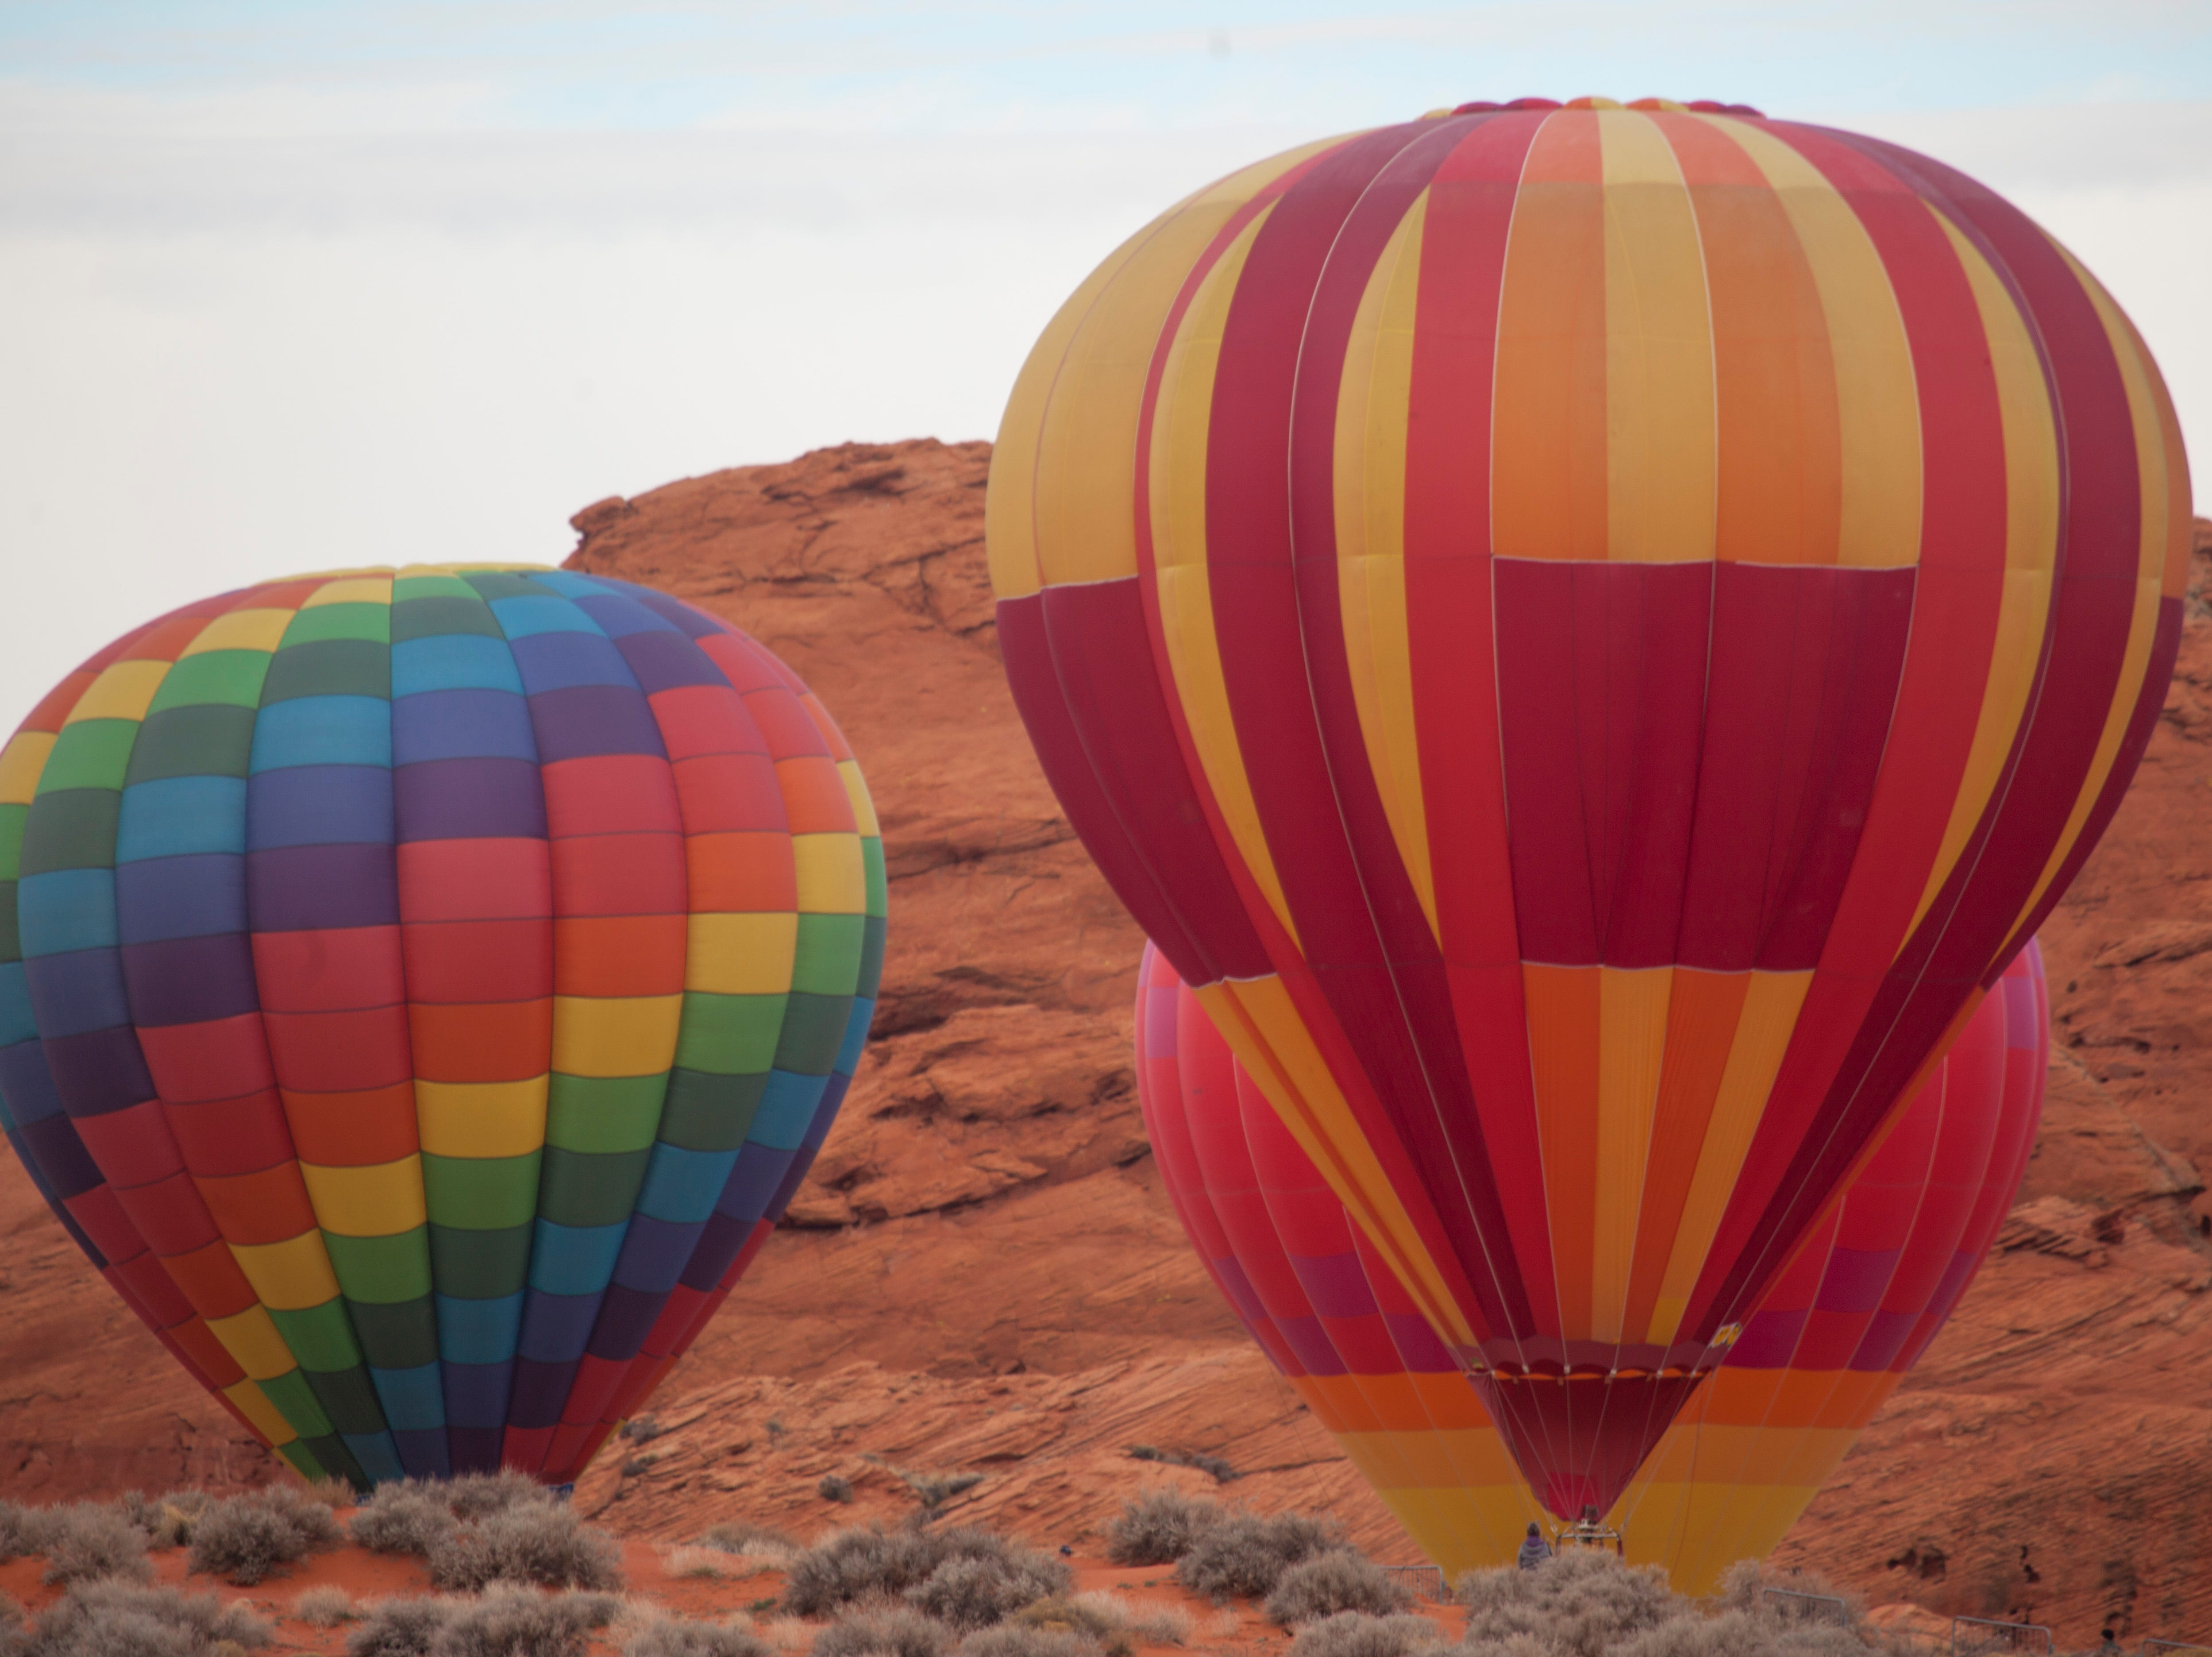 Hot air balloon fans gather at the Sand Hollow Golf Course for the annual balloon festival Saturday, Feb. 9, 2019.